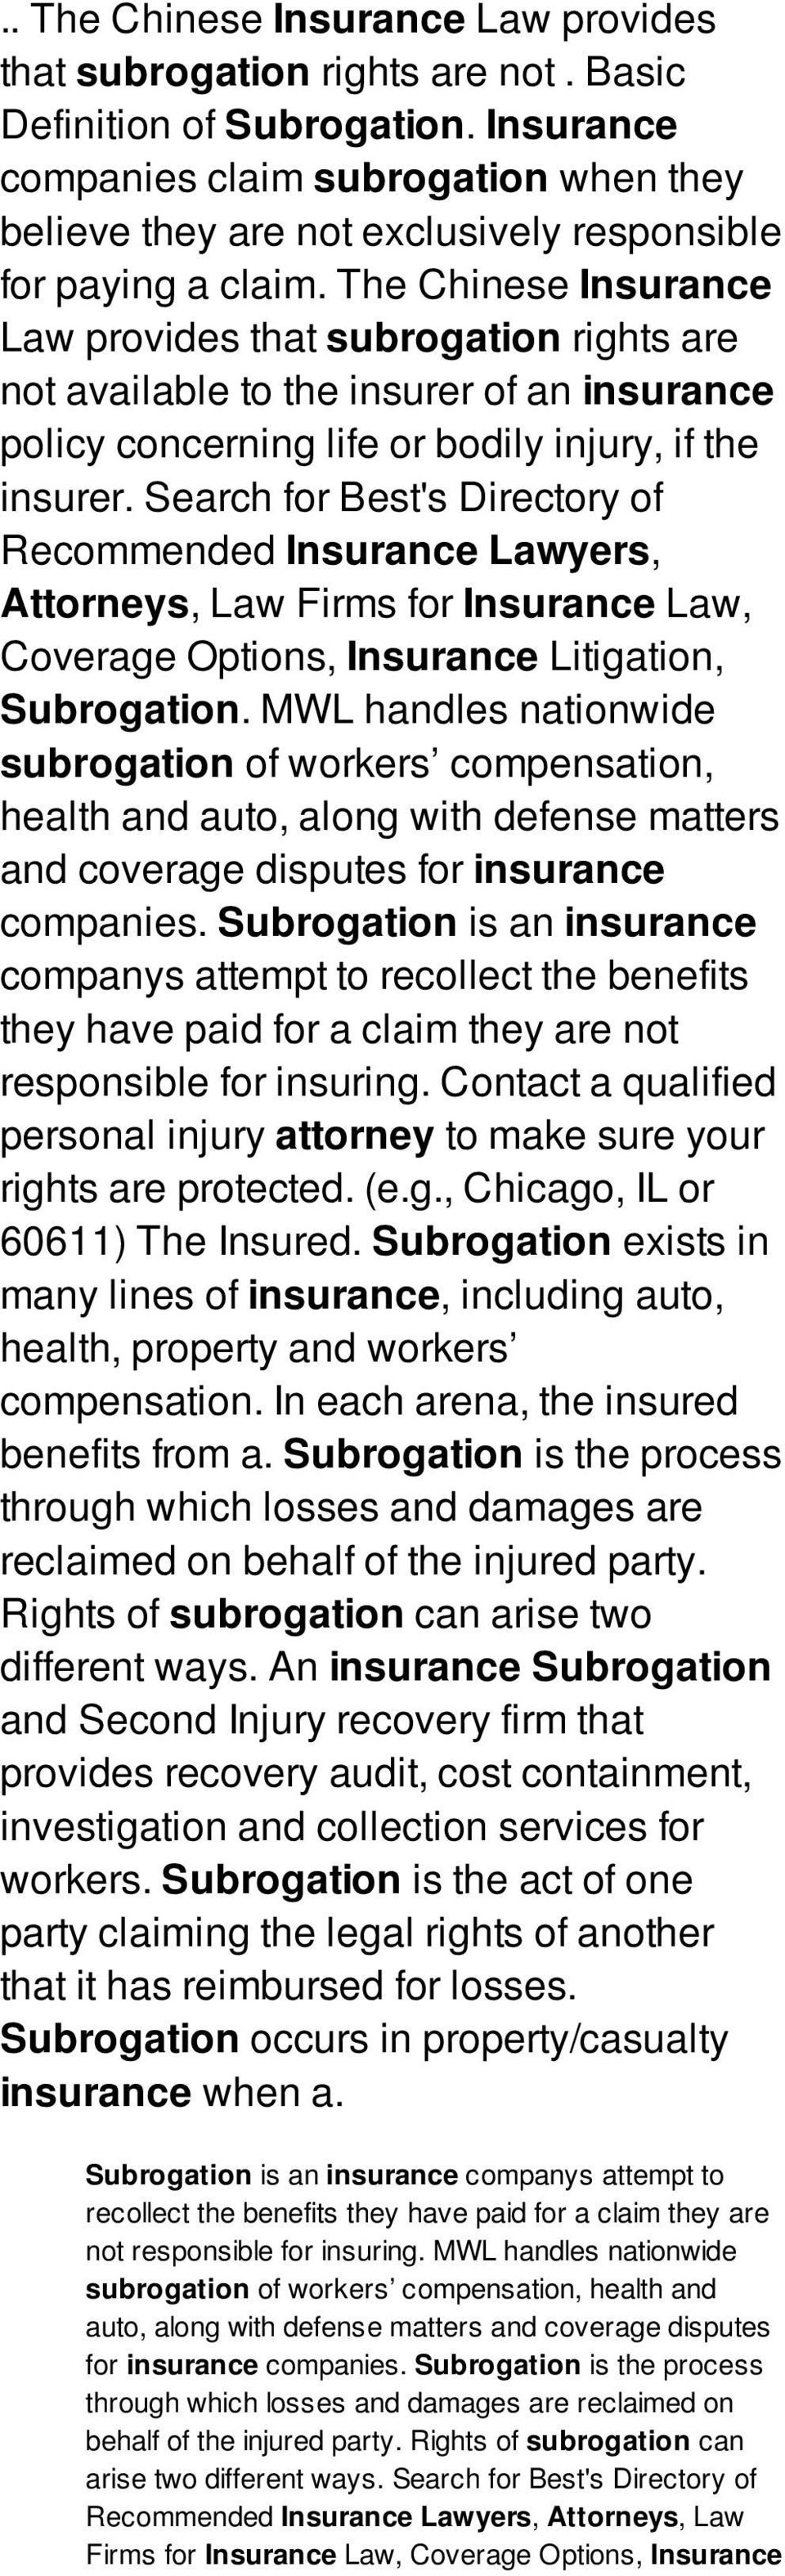 The Chinese Insurance Law provides that subrogation rights are not available to the insurer of an insurance policy concerning life or bodily injury, if the insurer.